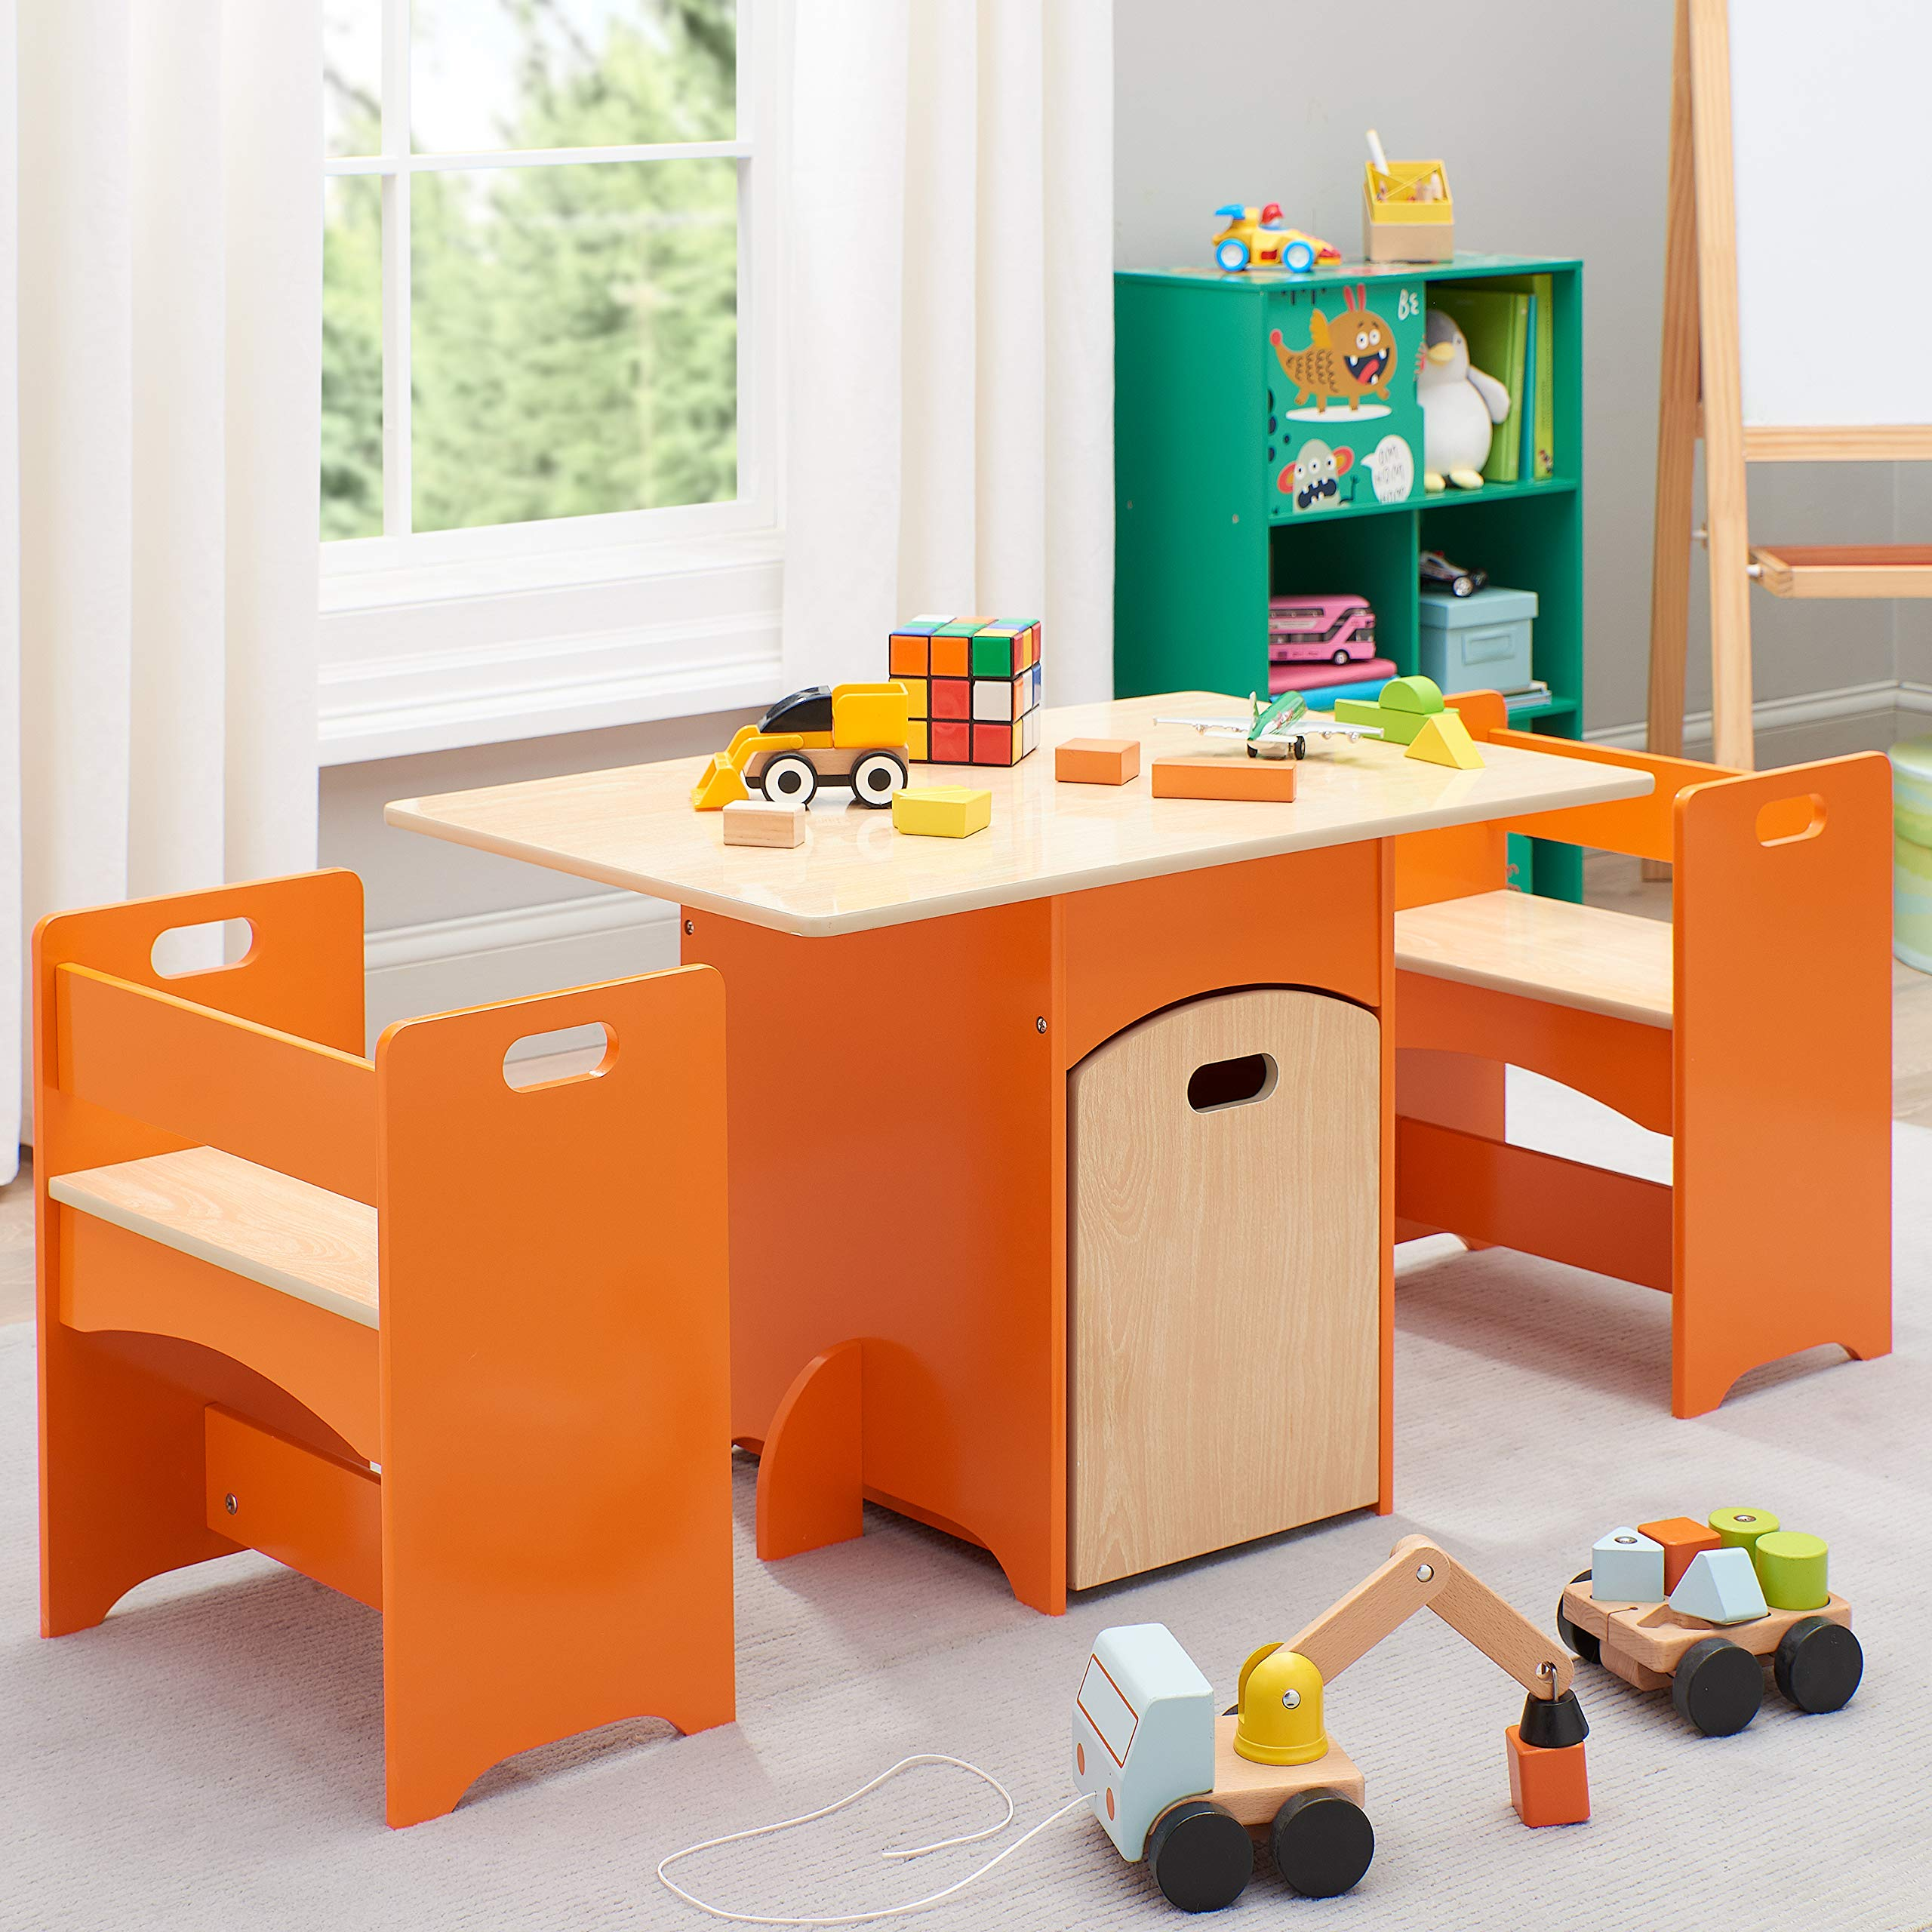 Delight Kids, Unique and Awesome Kids' Wooden Storage Table and Bench Set,4 Piece,All Fit Neatly Beneath The Table,Ideal for Classrooms,Kids Room,Playroom,Orange by Senda